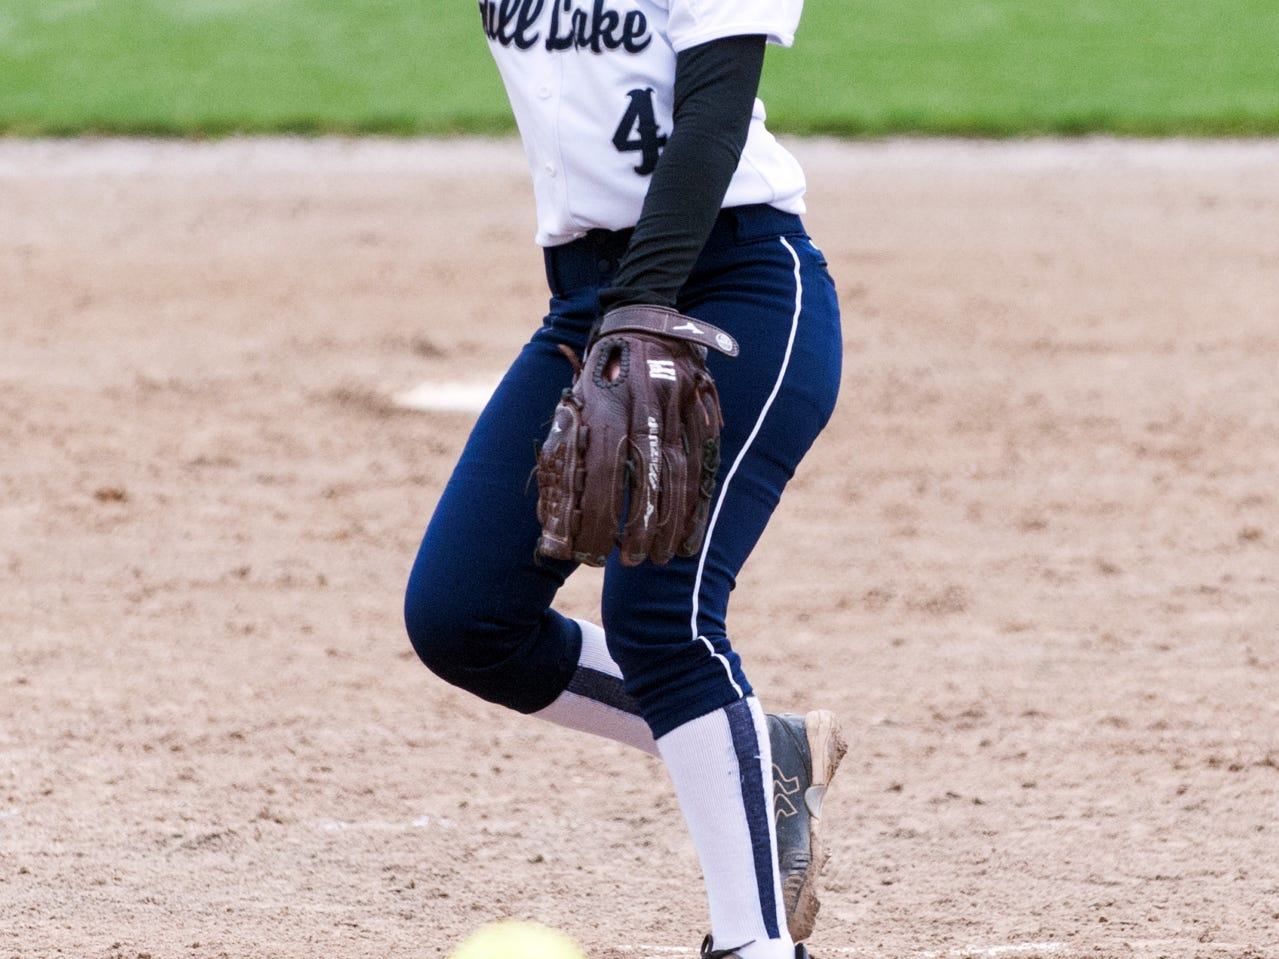 Gull Lake's pitcher, Gracie Boyle (4), in game action Saturday morning during the Gull Lake Invitational.